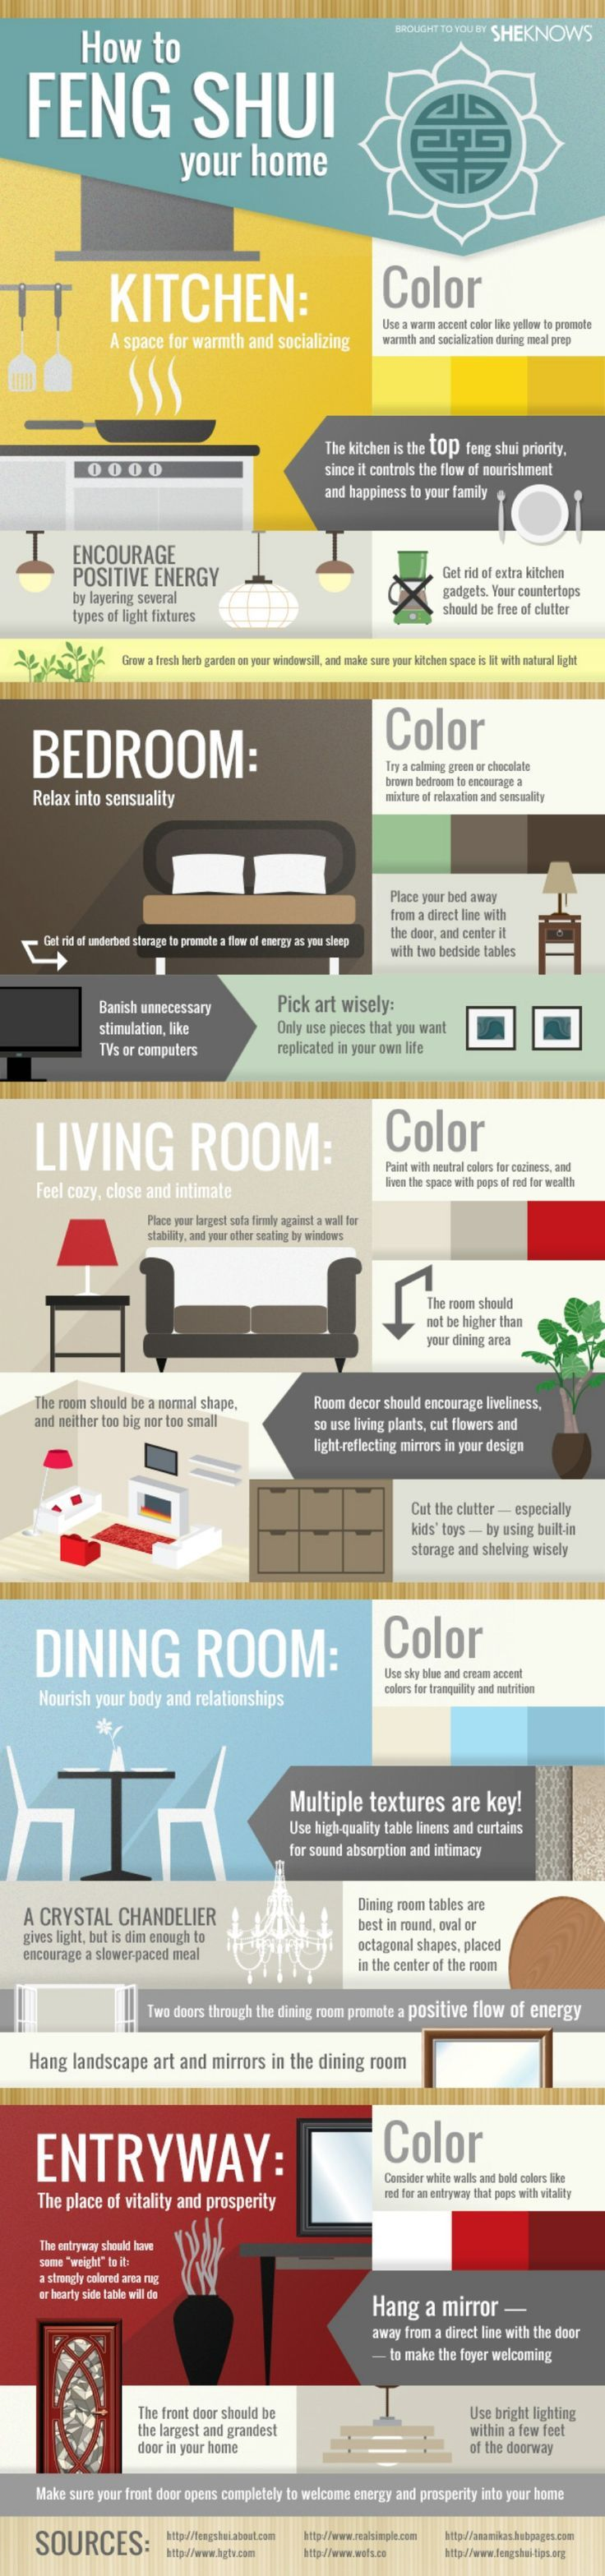 1000 Images About Feng Shui For My Home On Pinterest Home